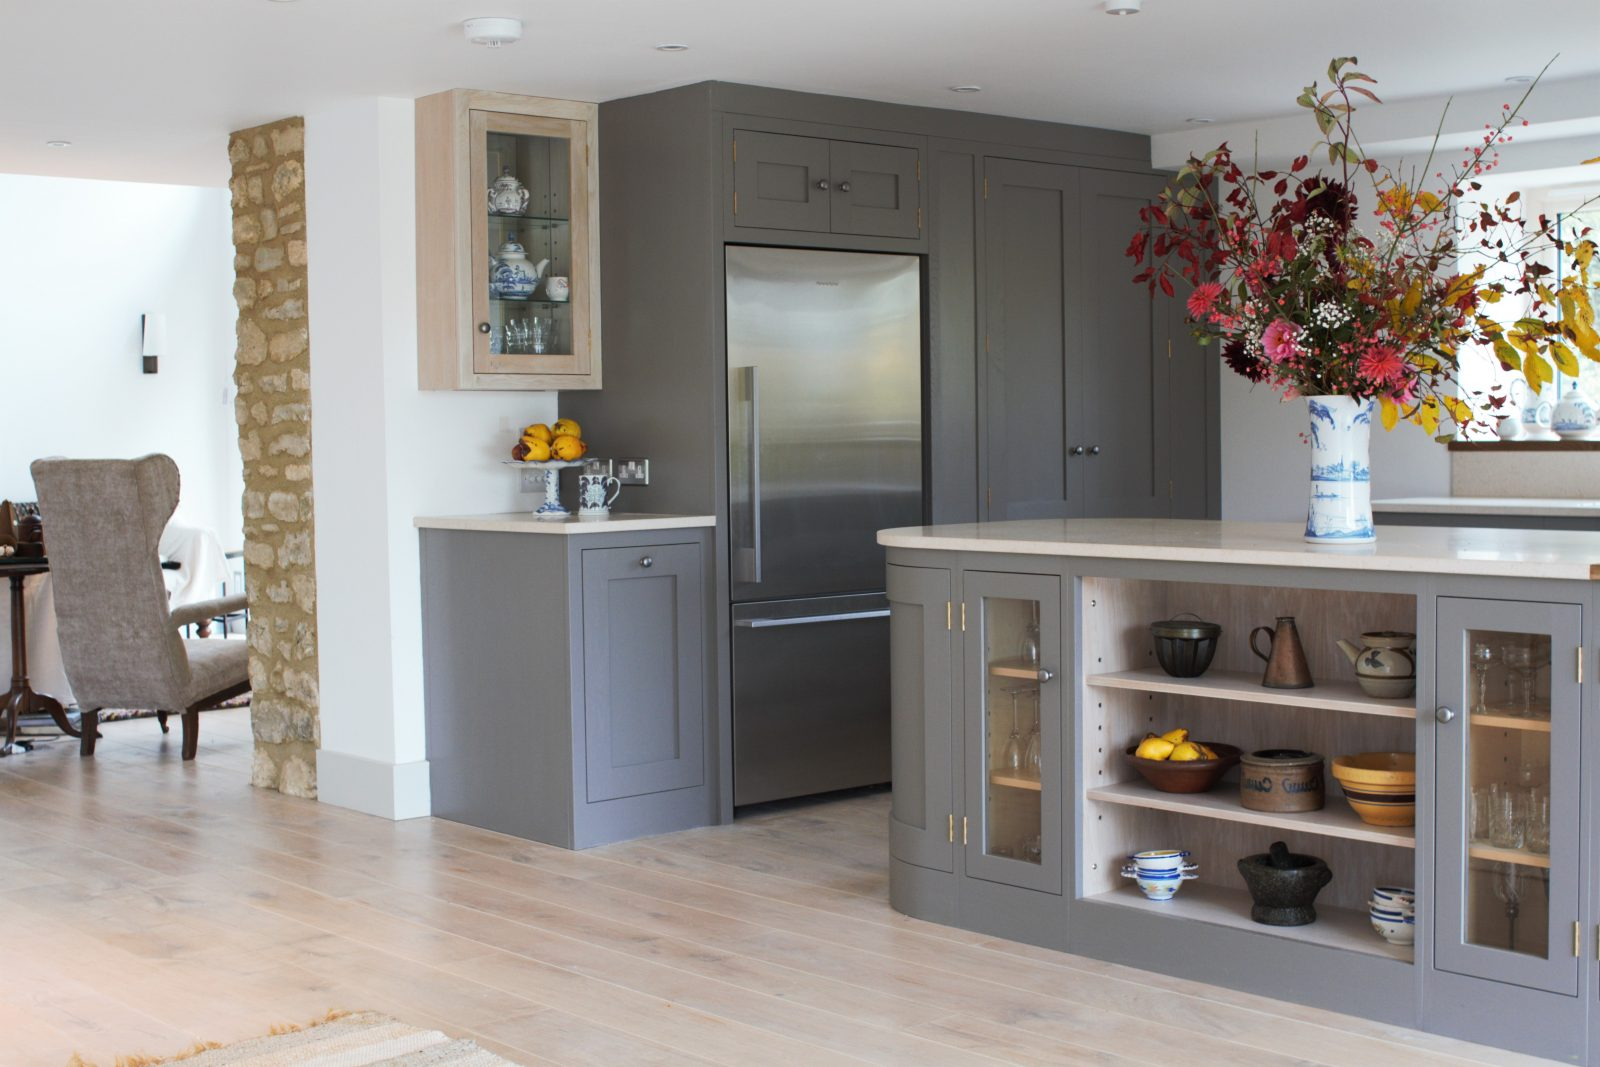 The Vine House, a modern style framed flat panel kitchen in a grade II listed building